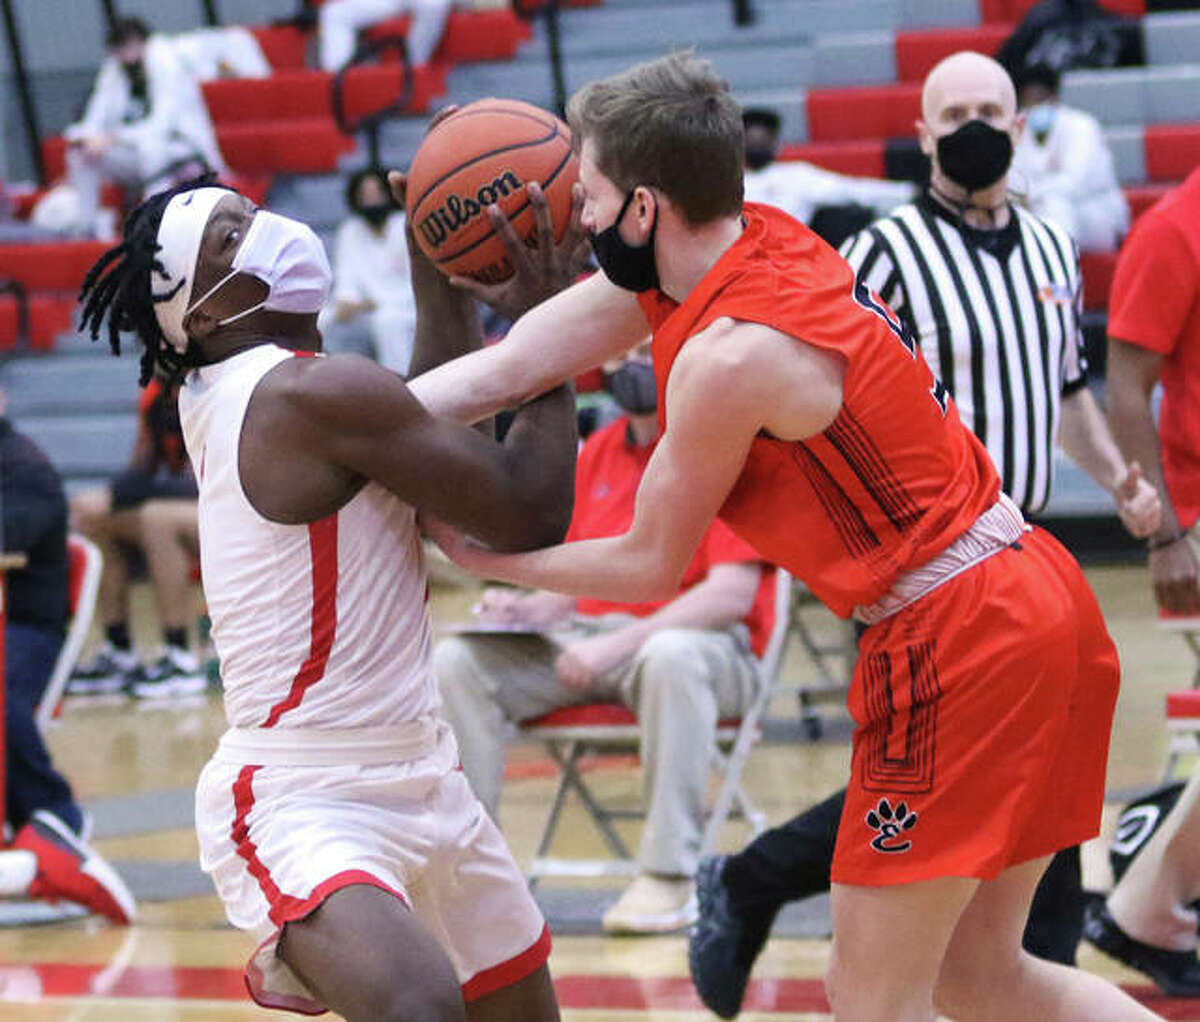 Alton's Ja'Markus Gary (left) is fouled by Edwardsville's Preston Weaver to prevent a layup on a Redbirds' fastbreak in the second half Saturday at Alton High in Godfrey.